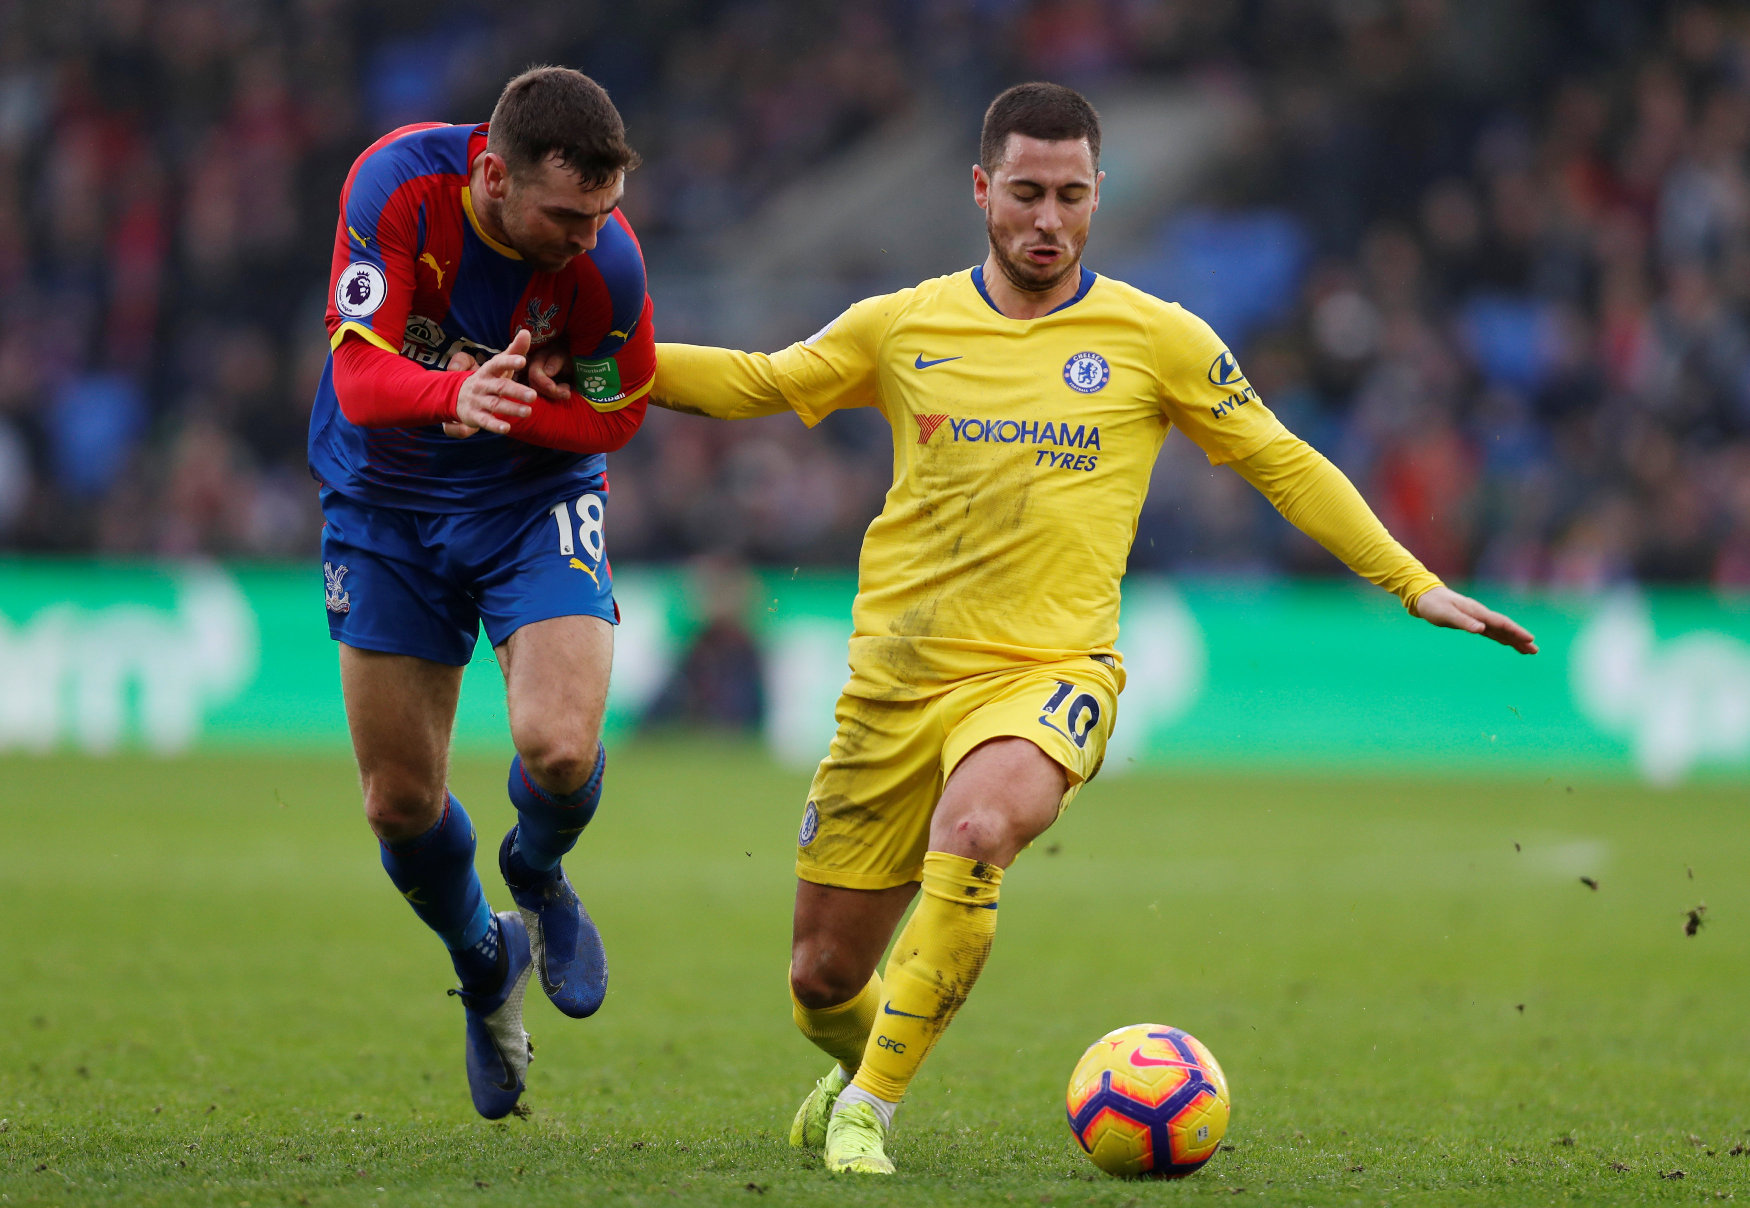 Soccer Football - Premier League - Crystal Palace v Chelsea - Selhurst Park, London, Britain - December 30, 2018  Chelsea's Eden Hazard in action with Crystal Palace's James McArthur   Action Images via Reuters/Paul Childs  EDITORIAL USE ONLY. No use with unauthorized audio, video, data, fixture lists, club/league logos or